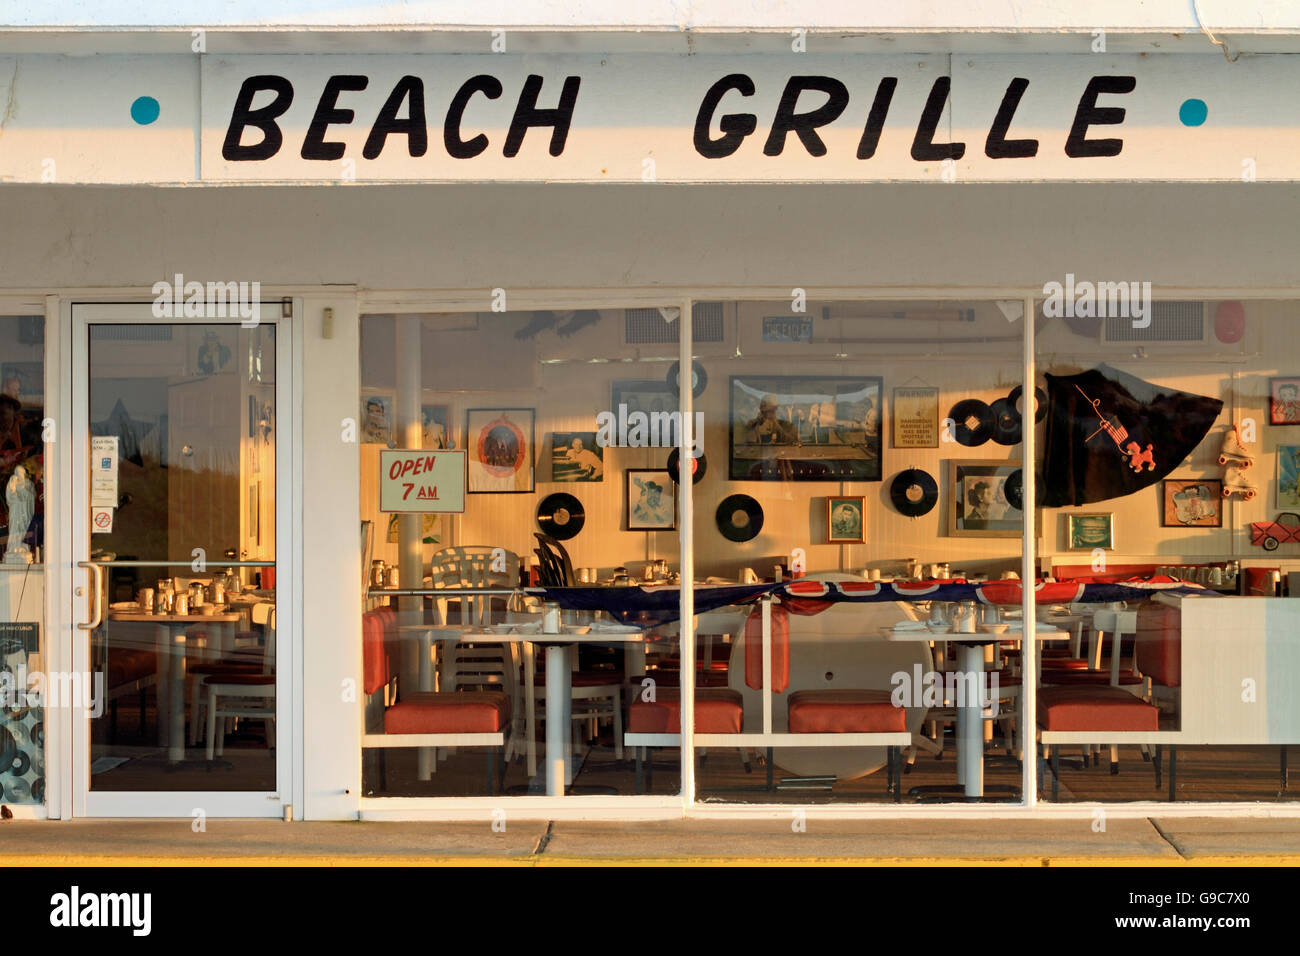 The Beach Grill coffee shop at the Crusader Hotel, Wildwood Crest, New Jersey, USA - Stock Image